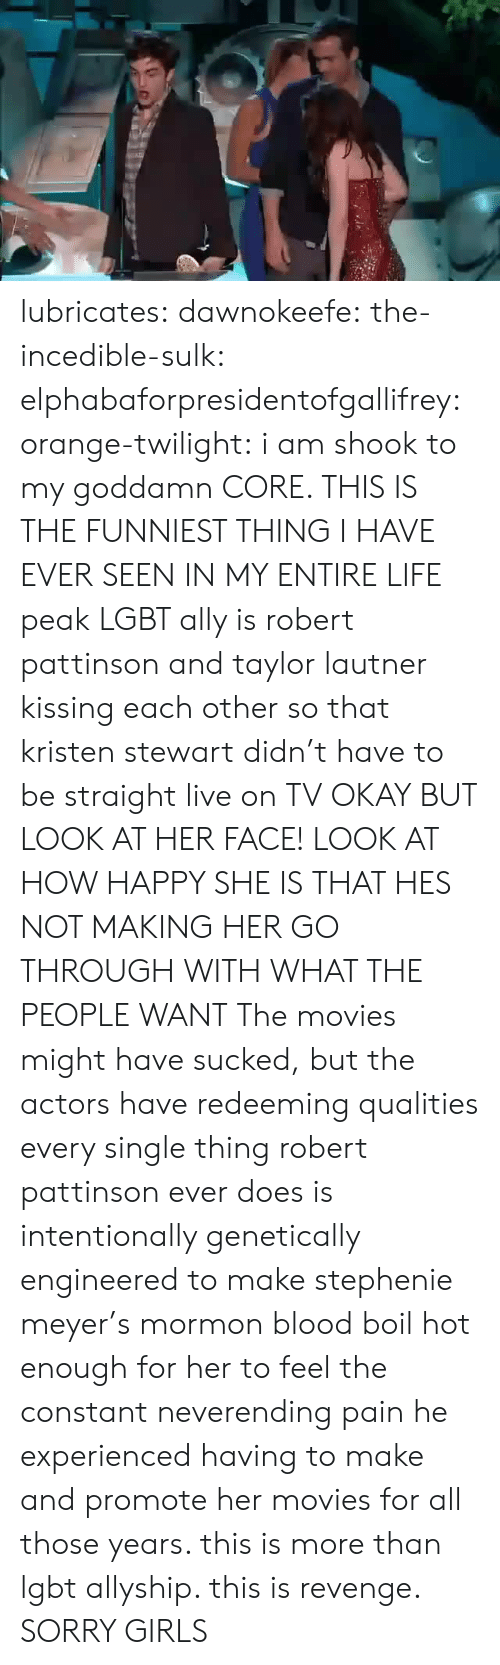 Kristen: lubricates: dawnokeefe:  the-incedible-sulk:  elphabaforpresidentofgallifrey:  orange-twilight: i am shook to my goddamn CORE. THIS IS THE FUNNIEST THING I HAVE EVER SEEN IN MY ENTIRE LIFE peak LGBT ally is robert pattinson and taylor lautner kissing each other so that kristen stewart didn't have to be straight live on TV   OKAY BUT LOOK AT HER FACE! LOOK AT HOW HAPPY SHE IS THAT HES NOT MAKING HER GO THROUGH WITH WHAT THE PEOPLE WANT  The movies might have sucked, but the actors have redeeming qualities   every single thing robert pattinson ever does is intentionally genetically engineered to make stephenie meyer's mormon blood boil hot enough for her to feel the constant neverending pain he experienced having to make and promote her movies for all those years. this is more than lgbt allyship. this is revenge.  SORRY GIRLS